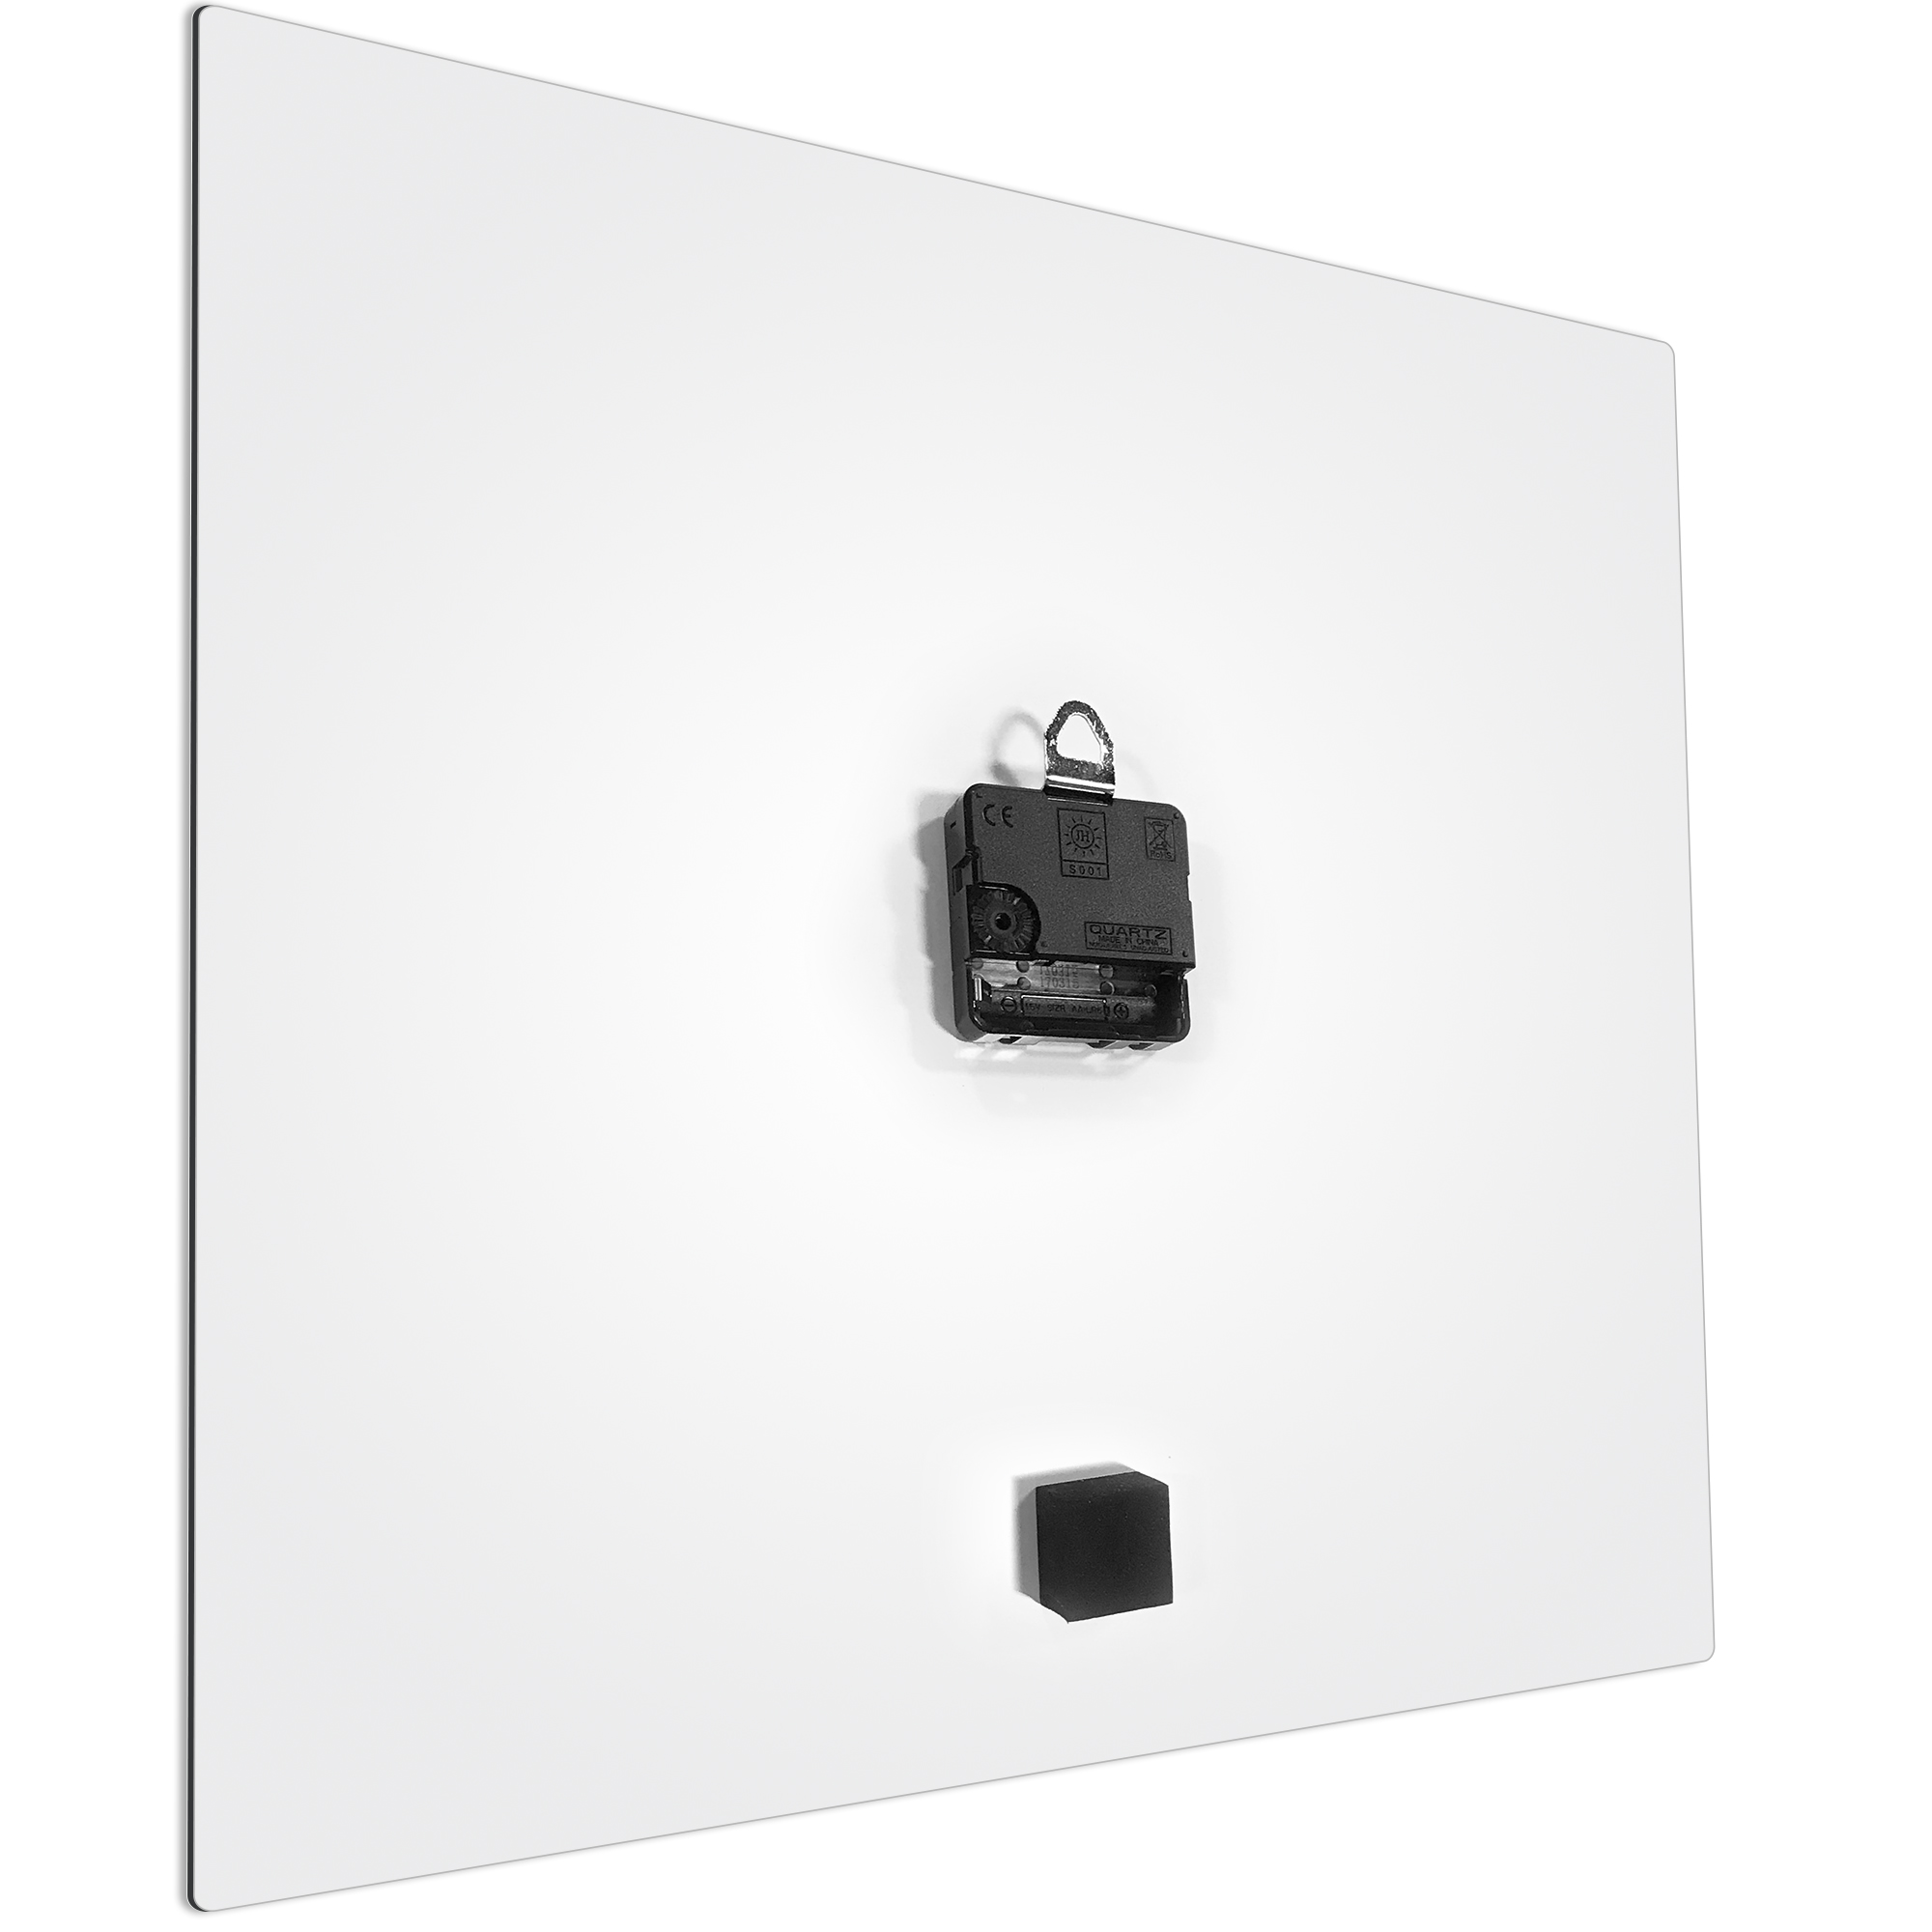 Greenout White Square Clock Large by Adam Schwoeppe Contemporary Clock on Aluminum Polymetal - Alternate View 3